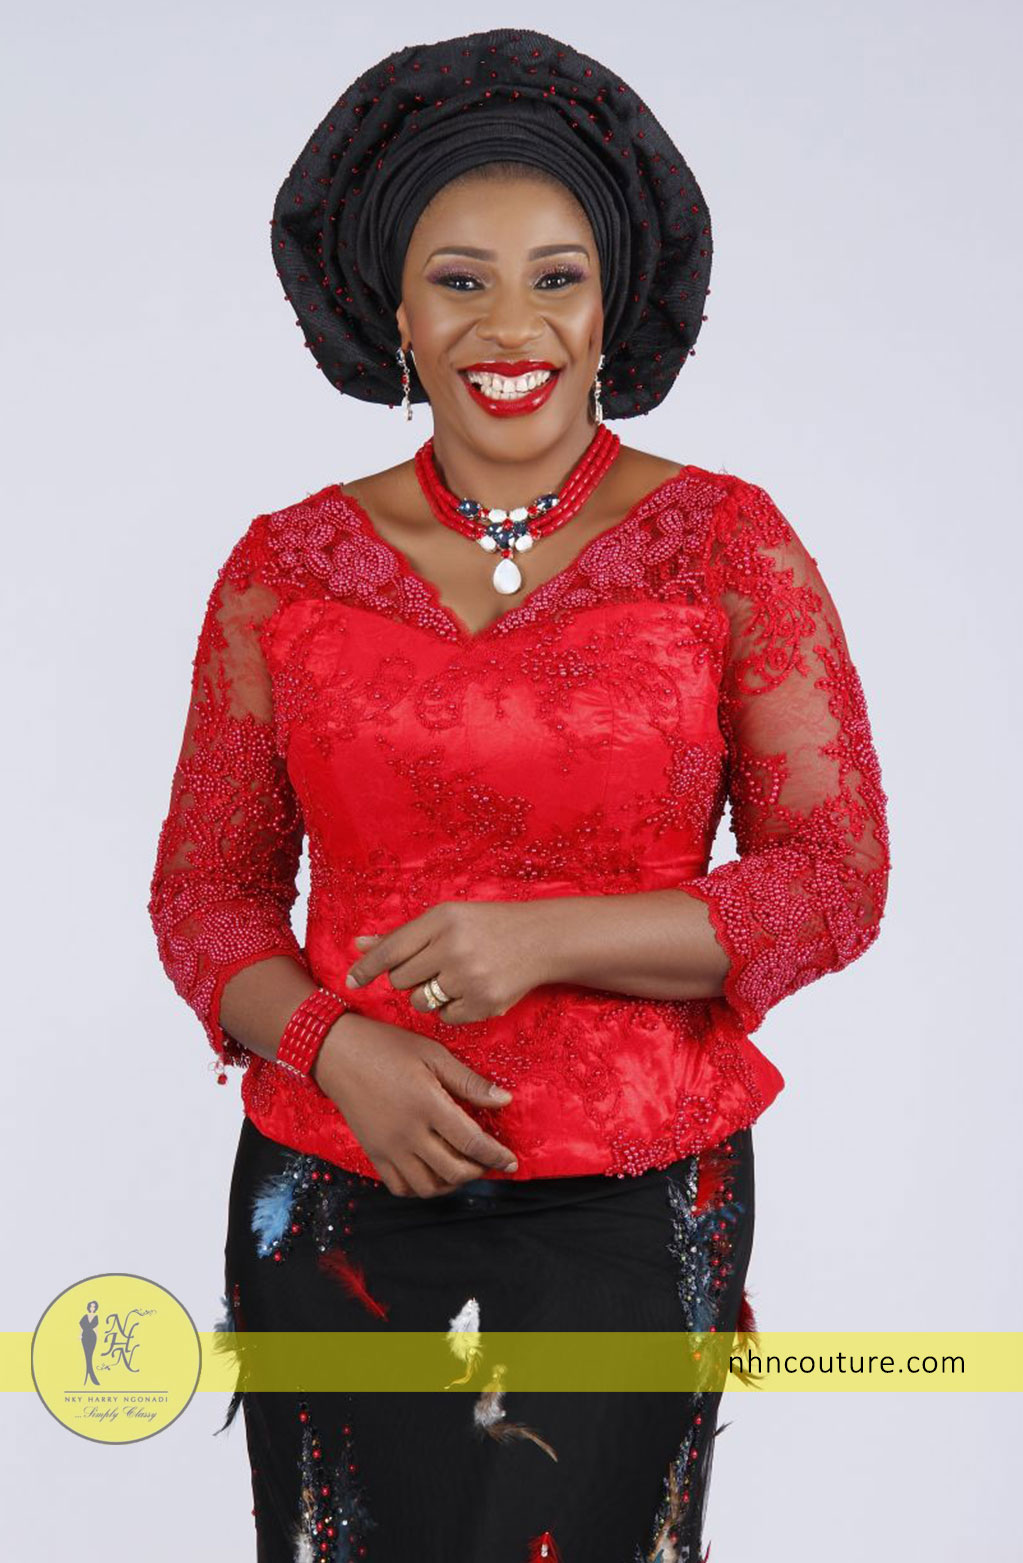 NHN-Couture_red-fitted-top-and-black-fabric-feathers-skirt-3